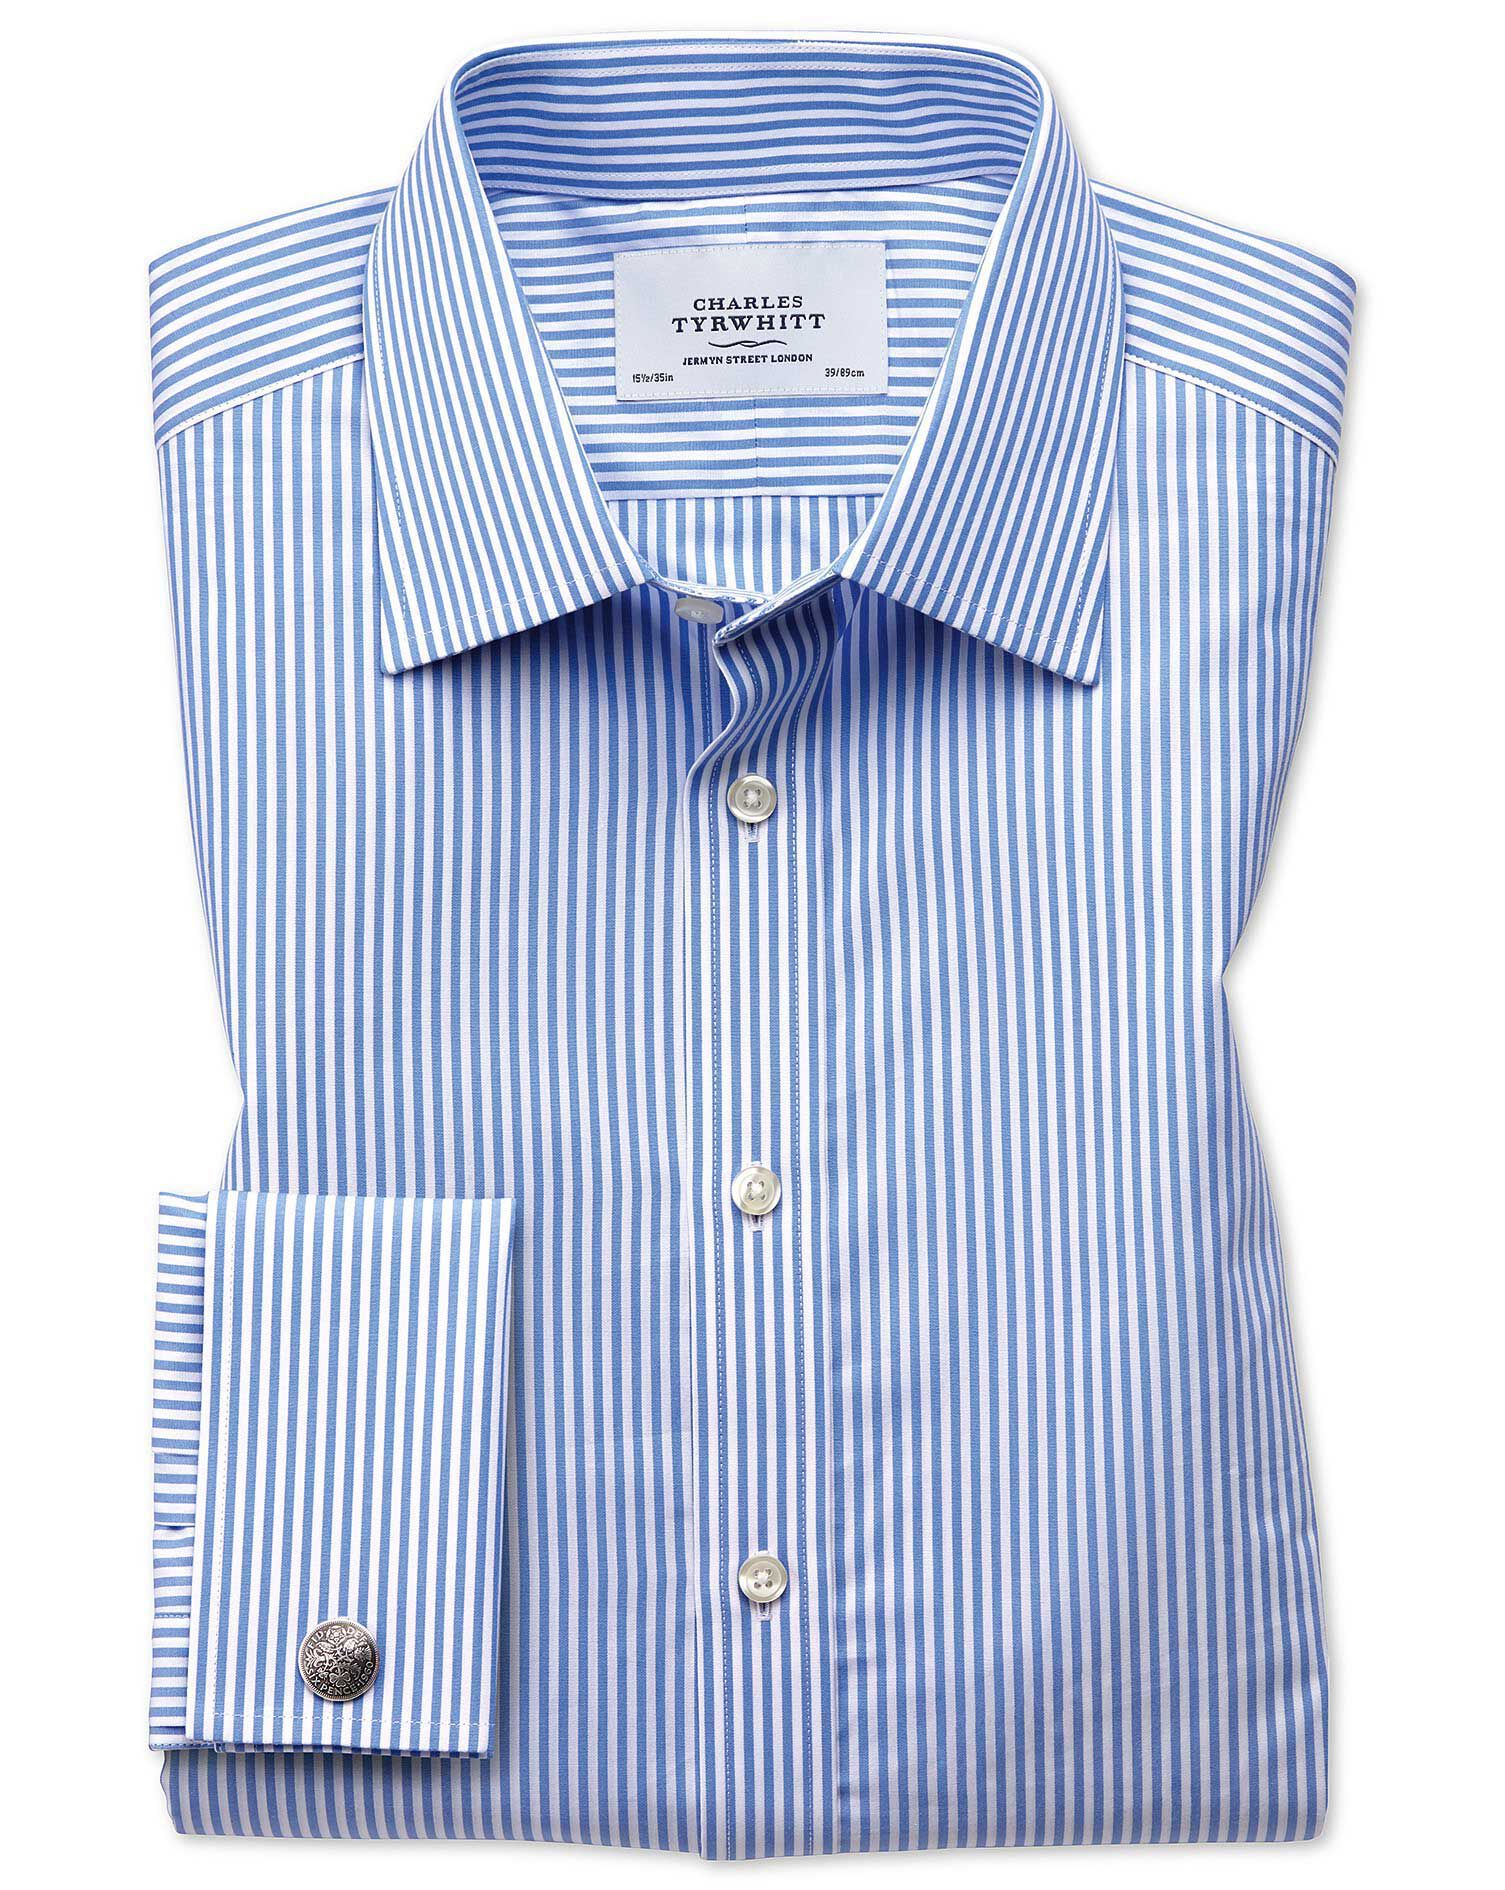 Slim Fit Bengal Stripe Sky Blue Cotton Formal Shirt Single Cuff Size 16.5/34 by Charles Tyrwhitt